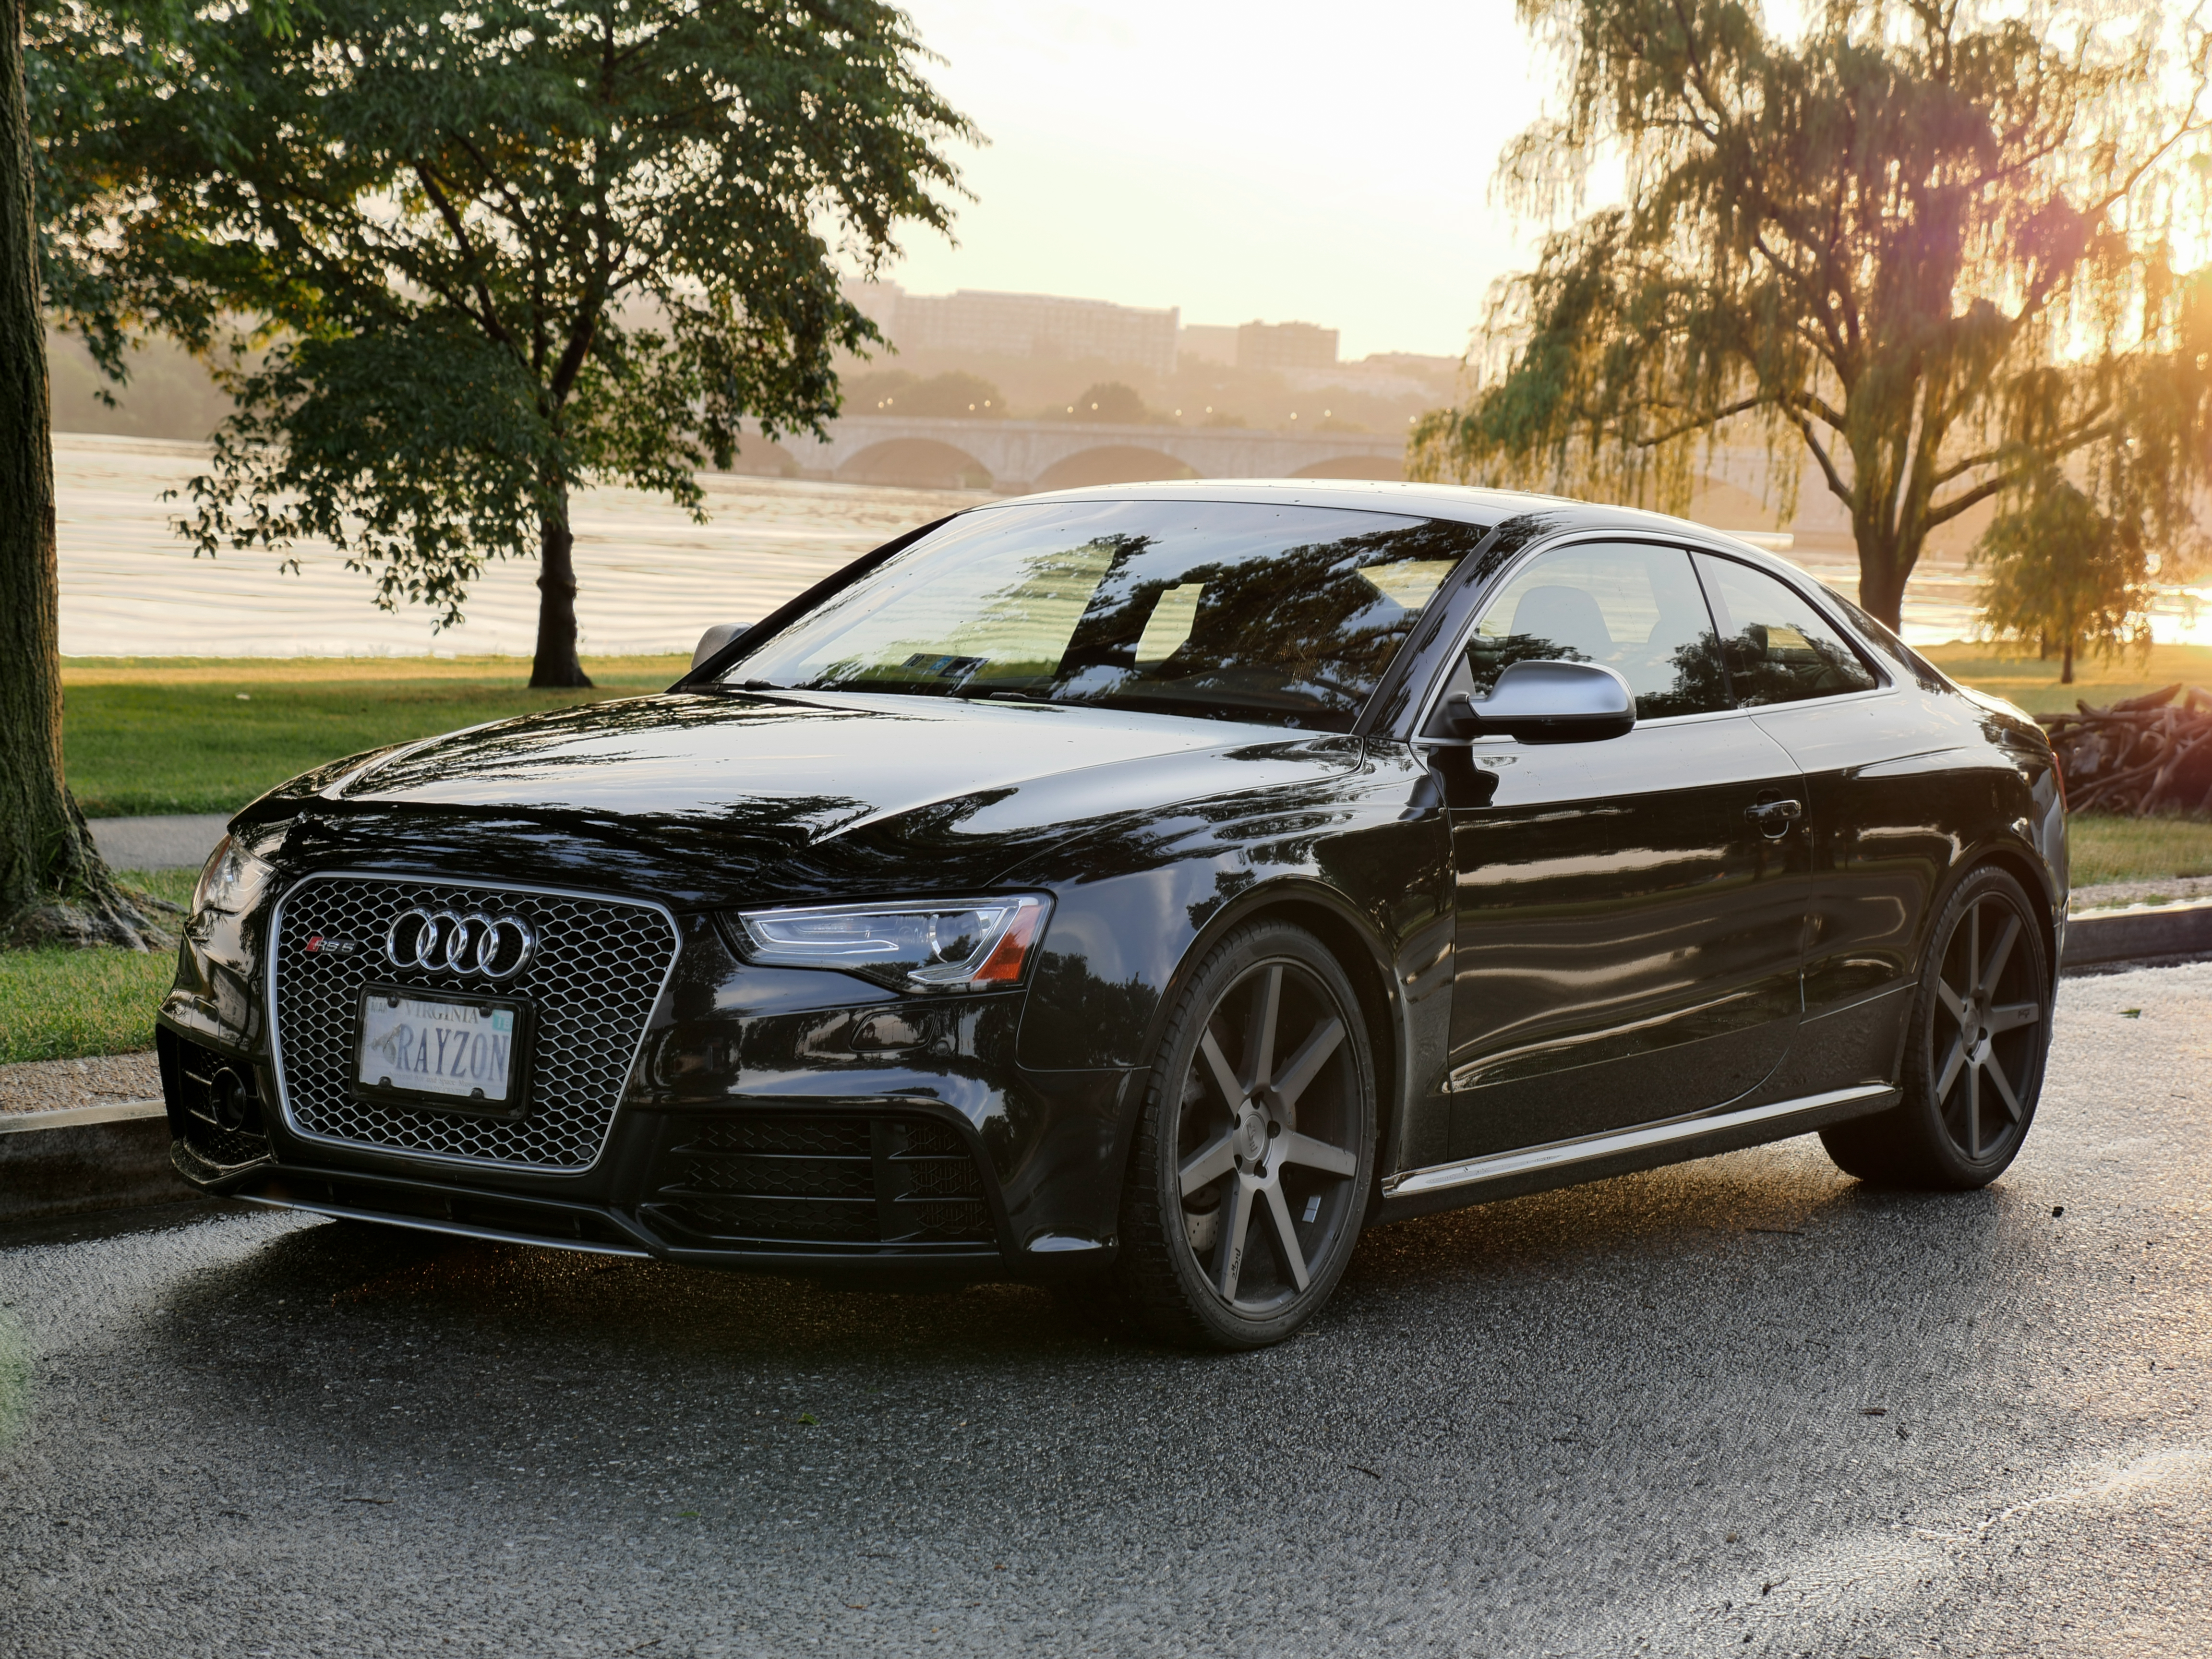 Ron's 2013 Rs5